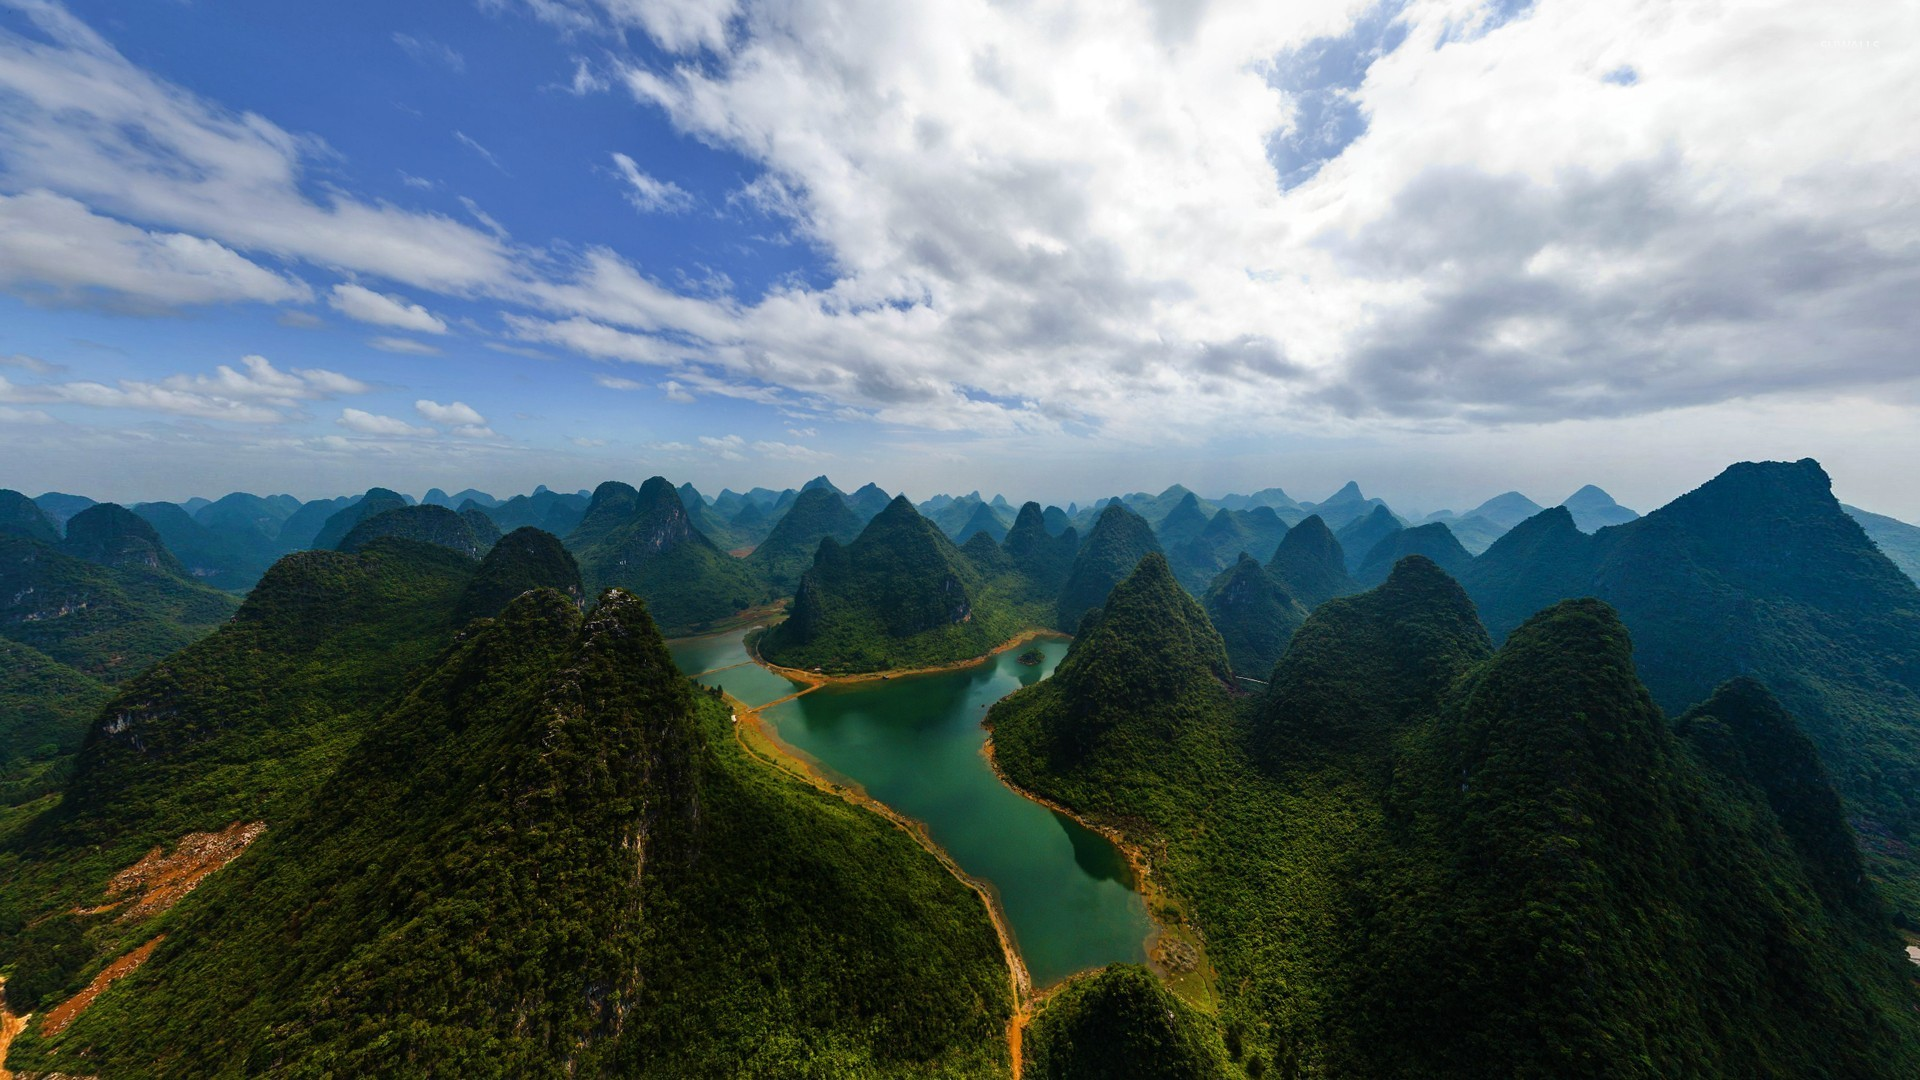 Guilin China  city pictures gallery : Guilin, China wallpaper Nature wallpapers #26055